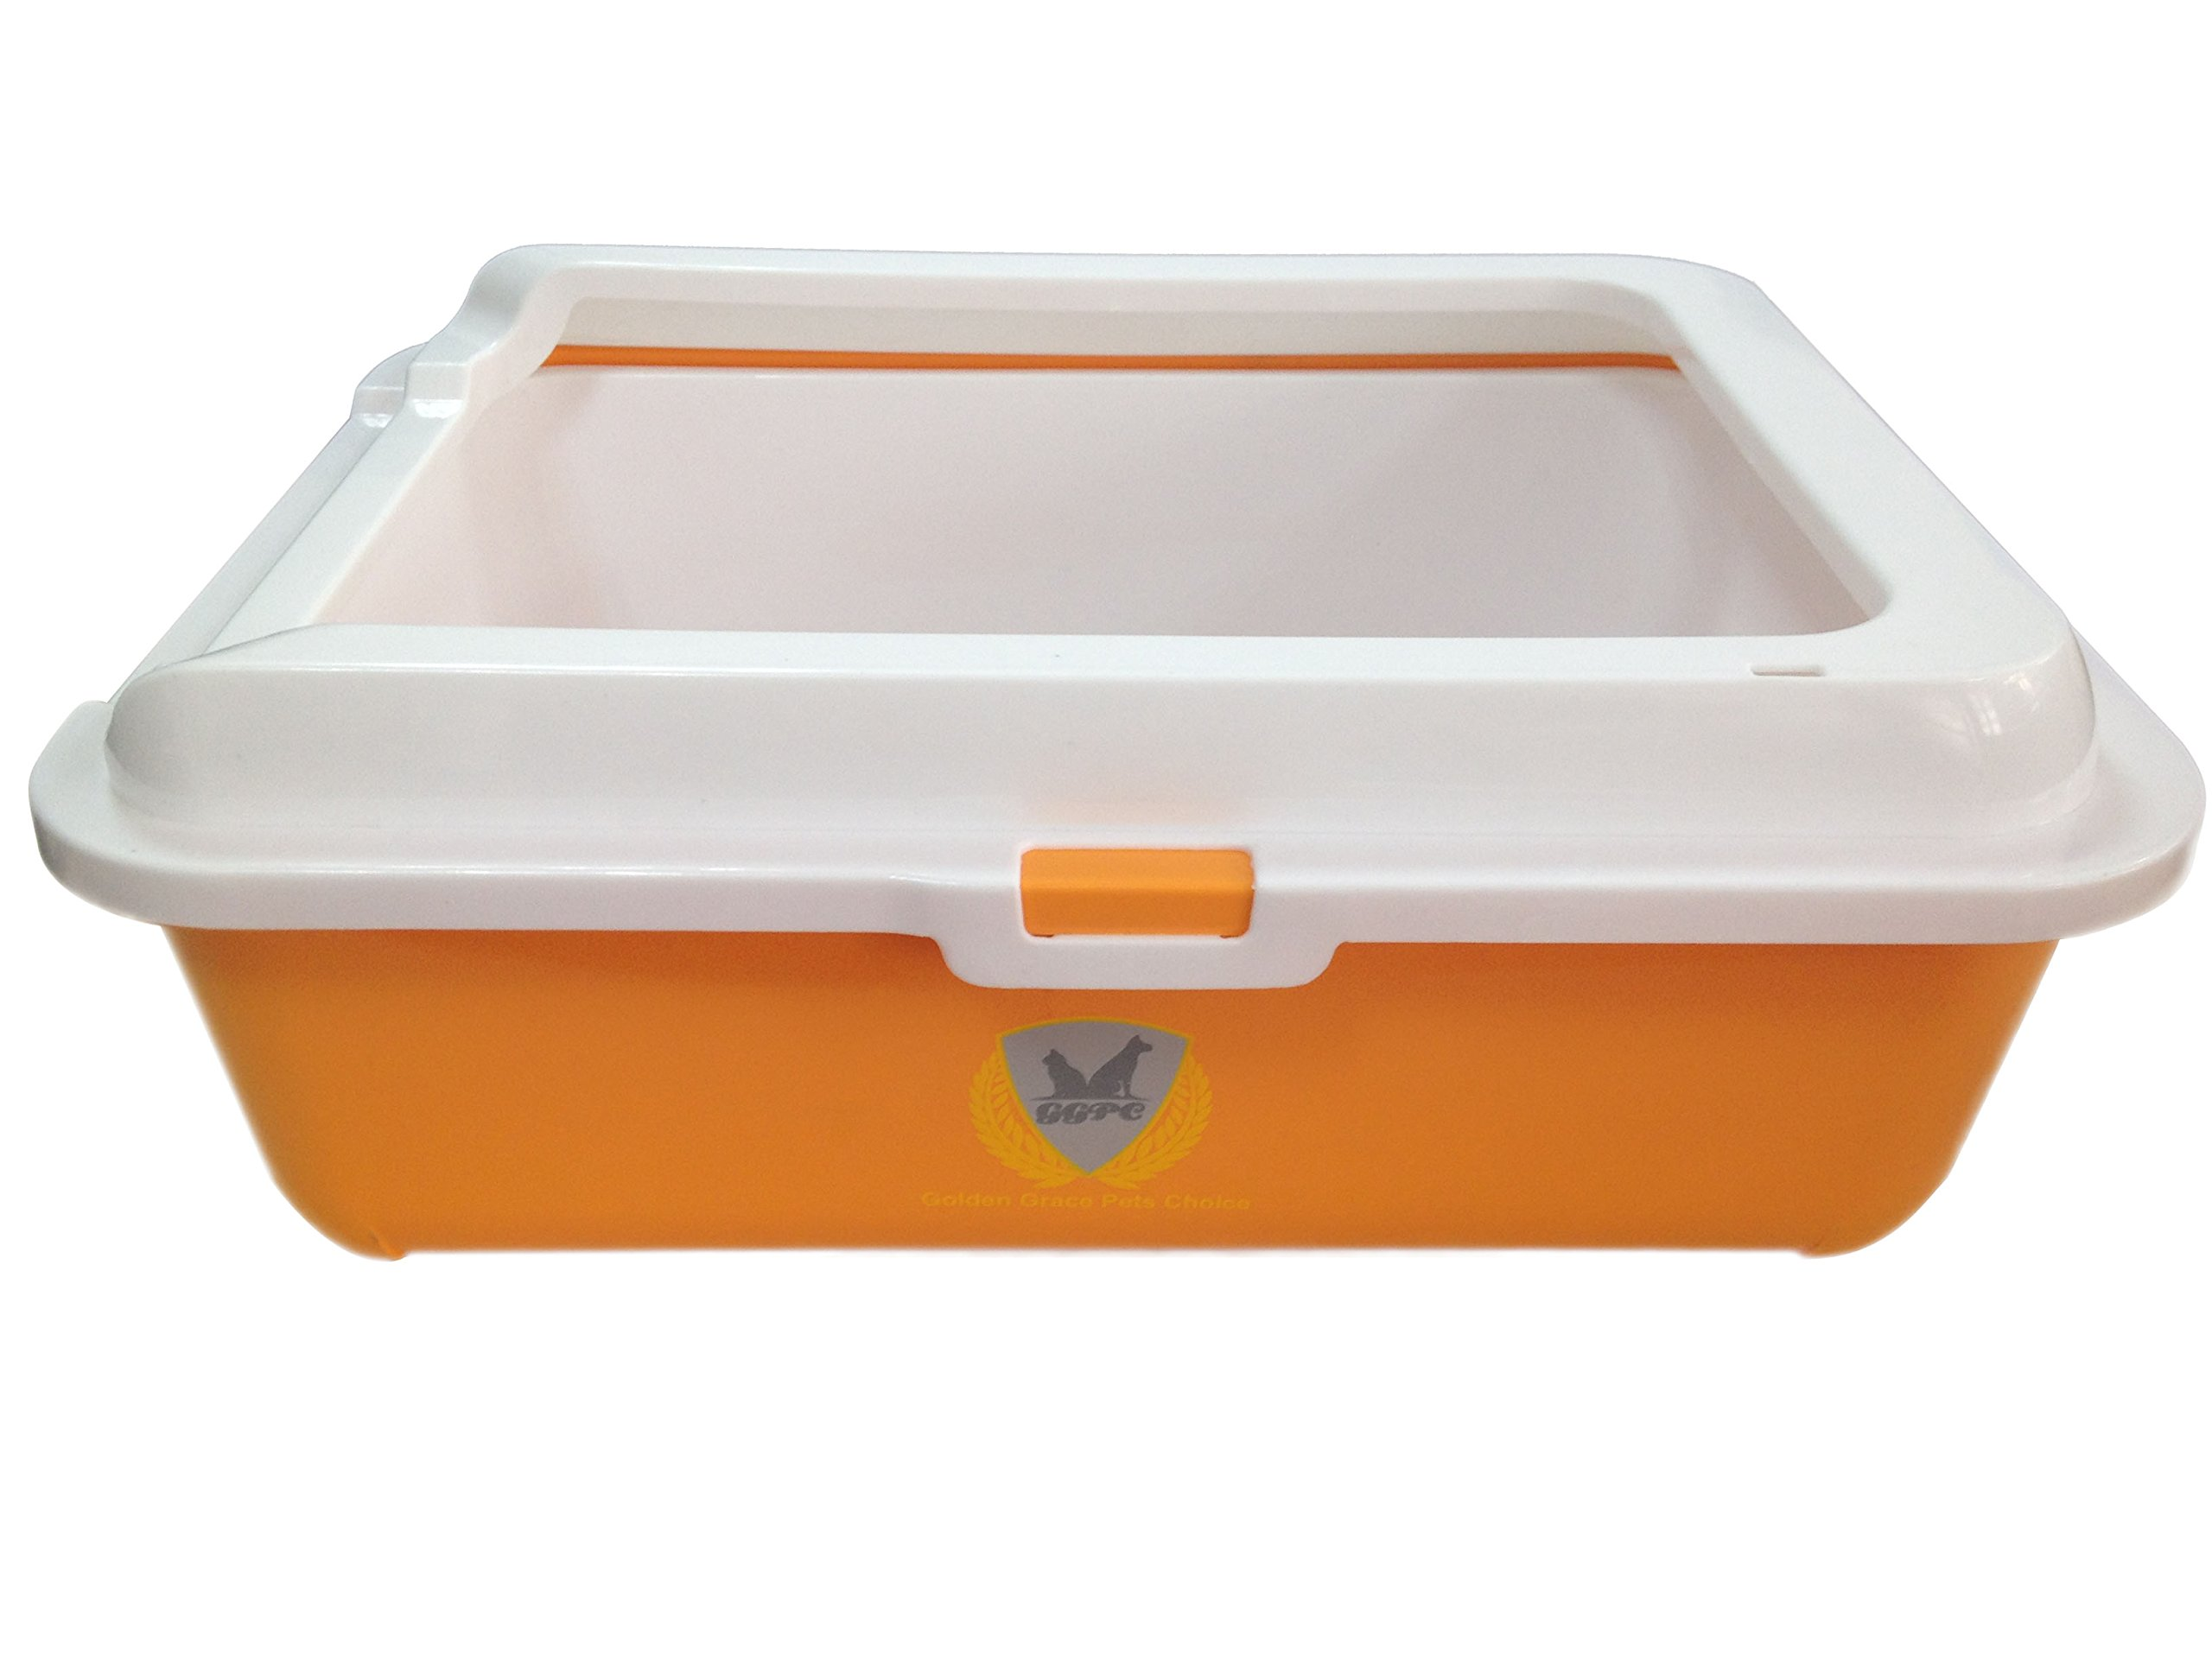 Sifting Litter Box Medium Cat Tray. Framed Sifting Litter Pan provided added height and reduced litter spills, easy to clean and strong; hold pan liners securely in place. by G.G.P.C. by Golden Grace Pets Choice